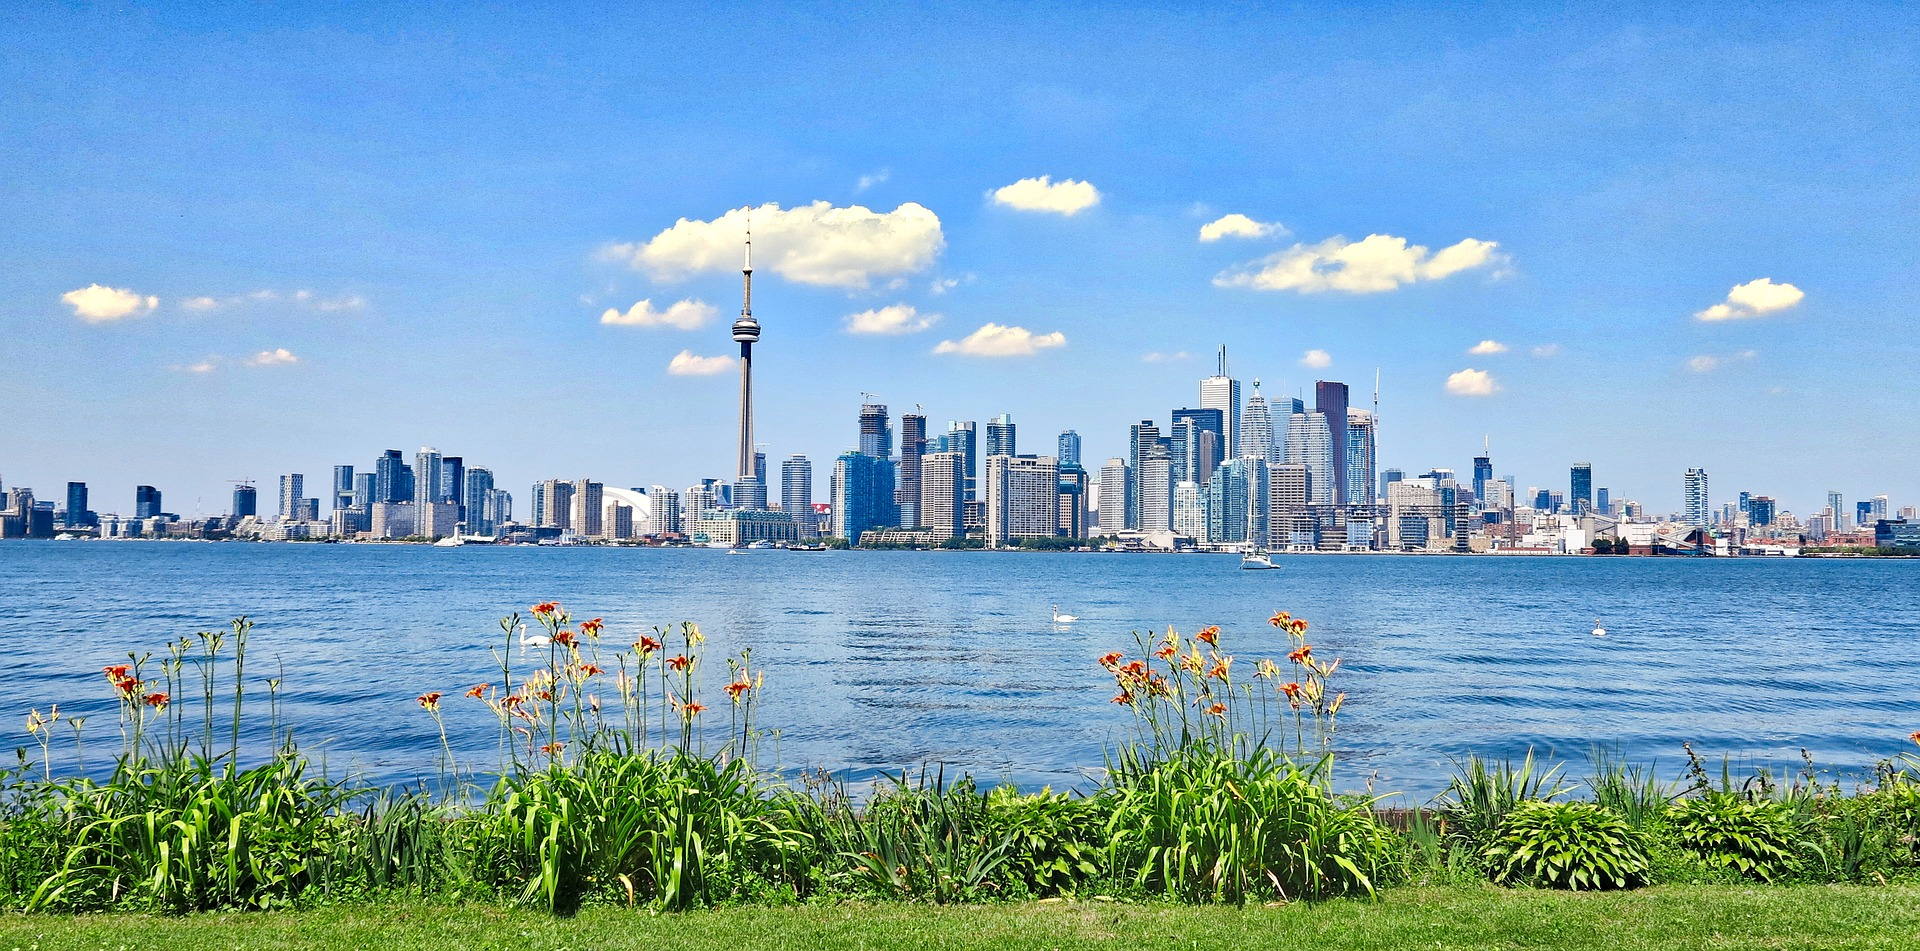 Free Home Plans Top Attractions And Things To Do In Toronto Canada Widest